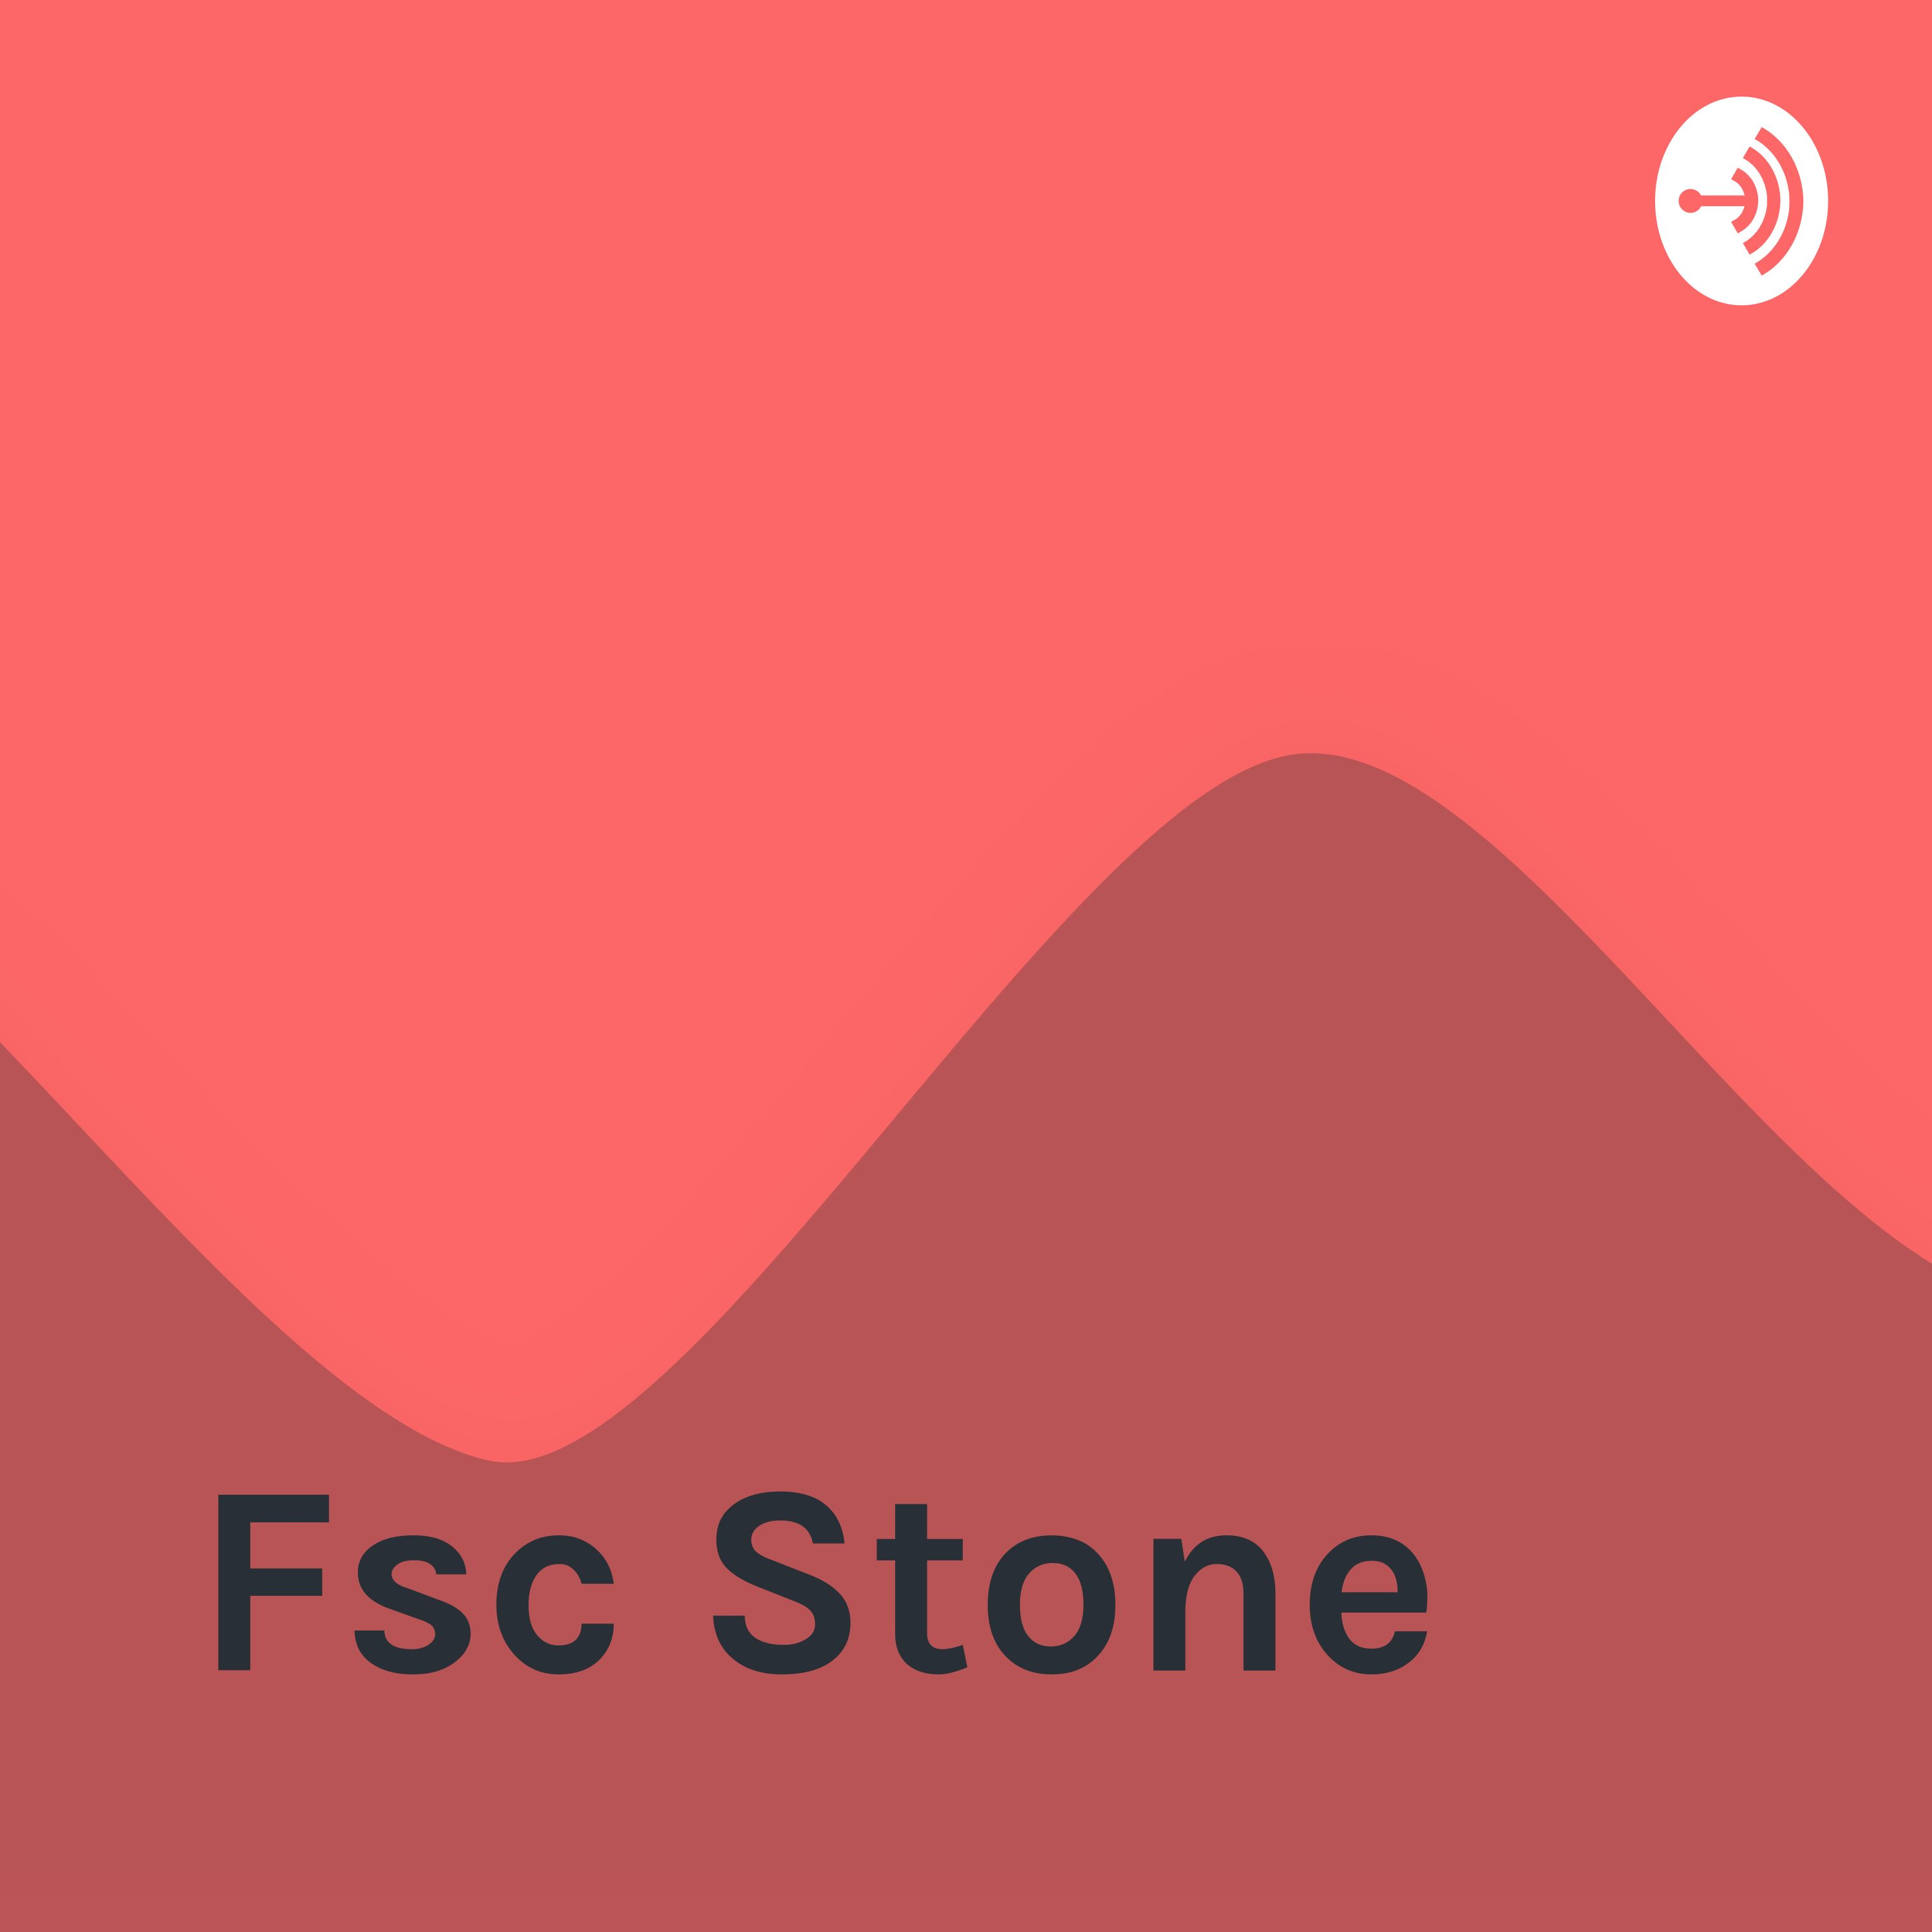 Fsc Stone | Listen via Stitcher for Podcasts